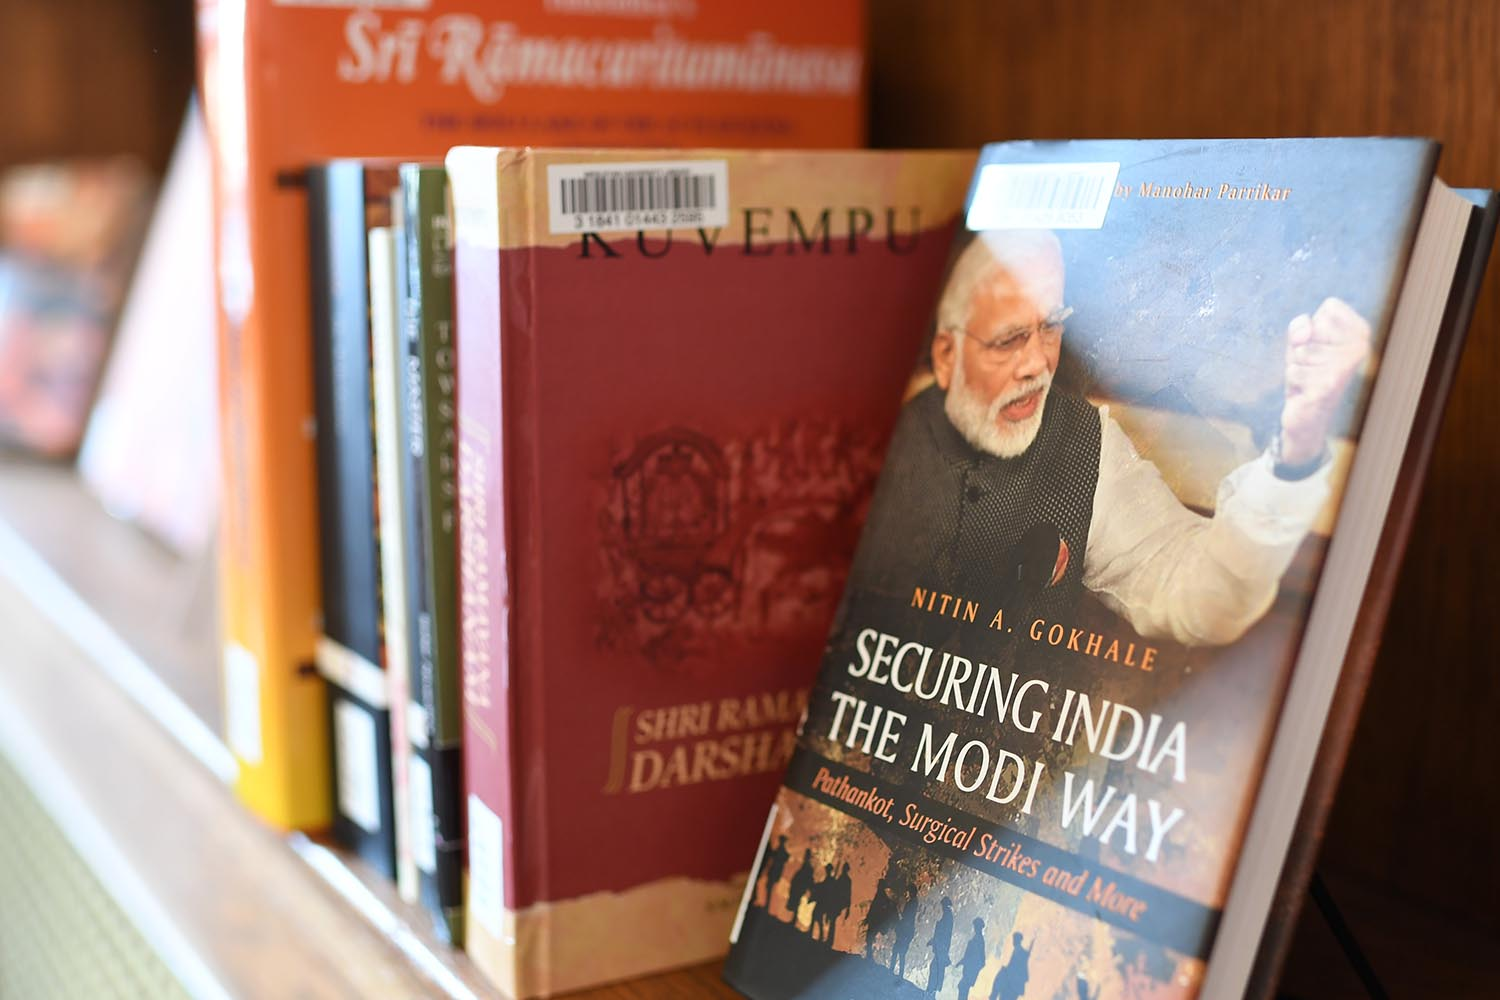 Securing India the Modi Way, by Nitin Gokhale, is one of the 33 books donated by the General Consul of India, New York.